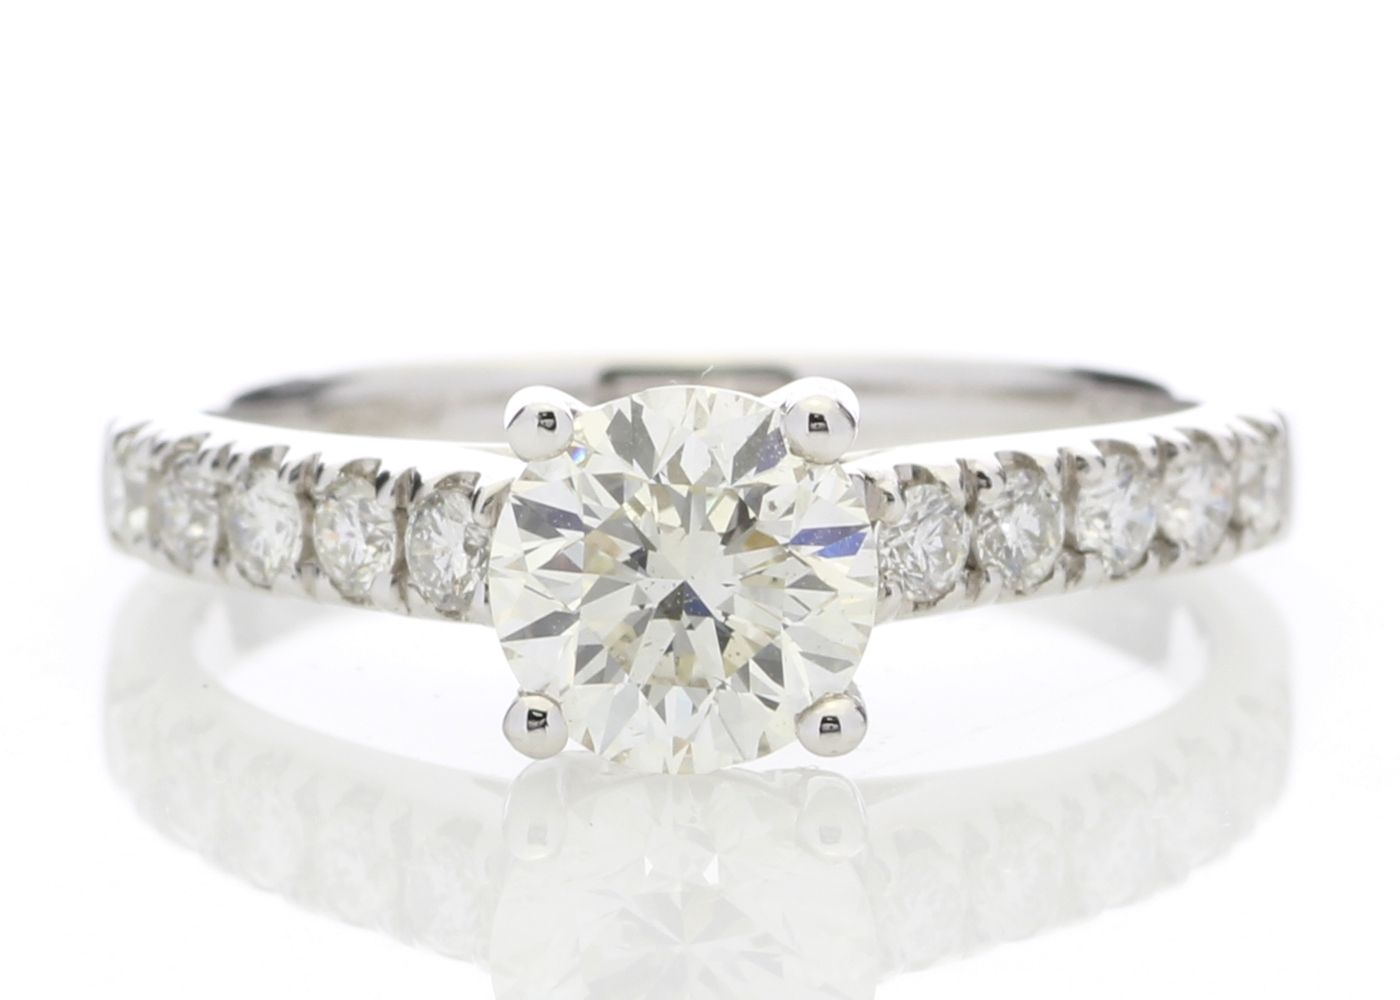 18ct White Gold Single Stone Diamond Ring With Stone Set Shoulders (1.02) 1.32 Carats